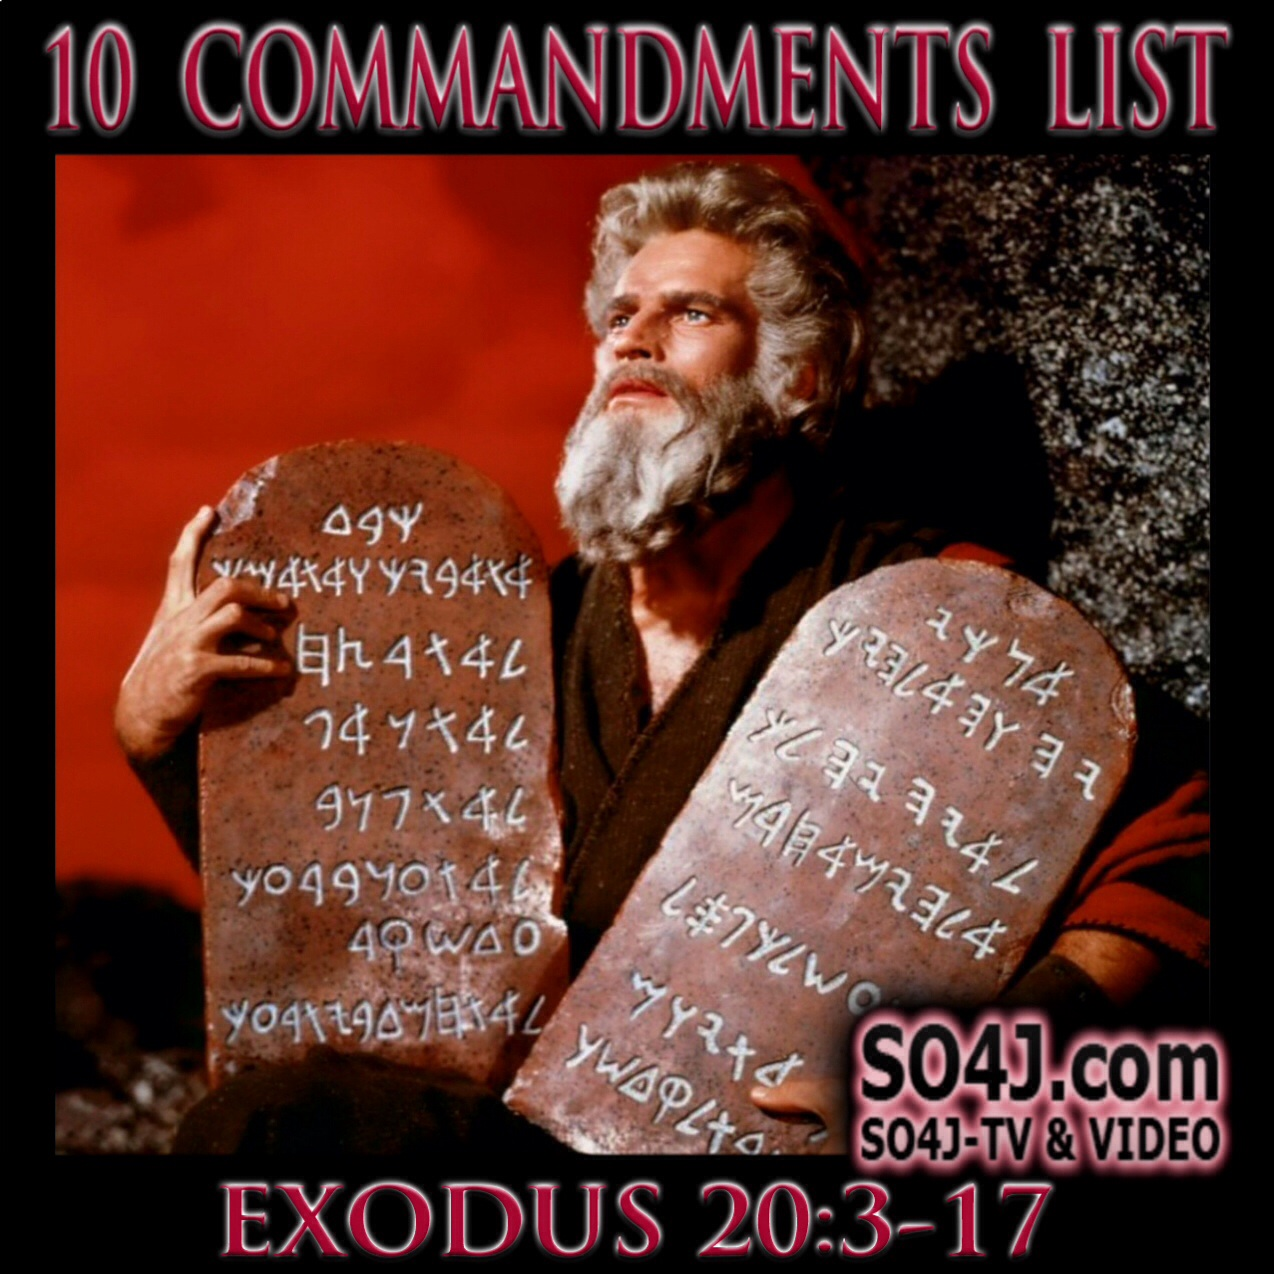 10 Commandments List - SO4J-TV - SO4J.com